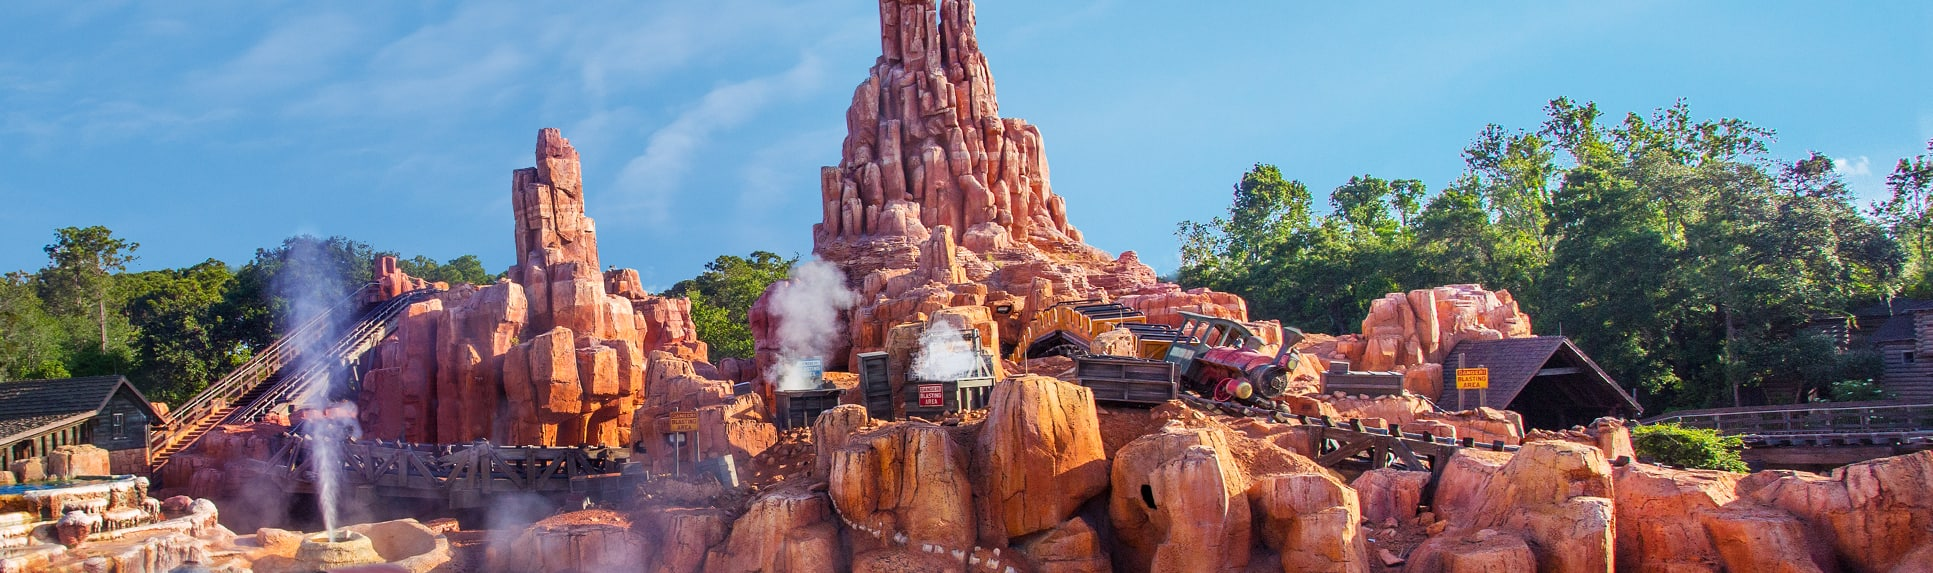 A view of Big Thunder Mountain Railroad located in Frontierland at Magic Kingdom Park